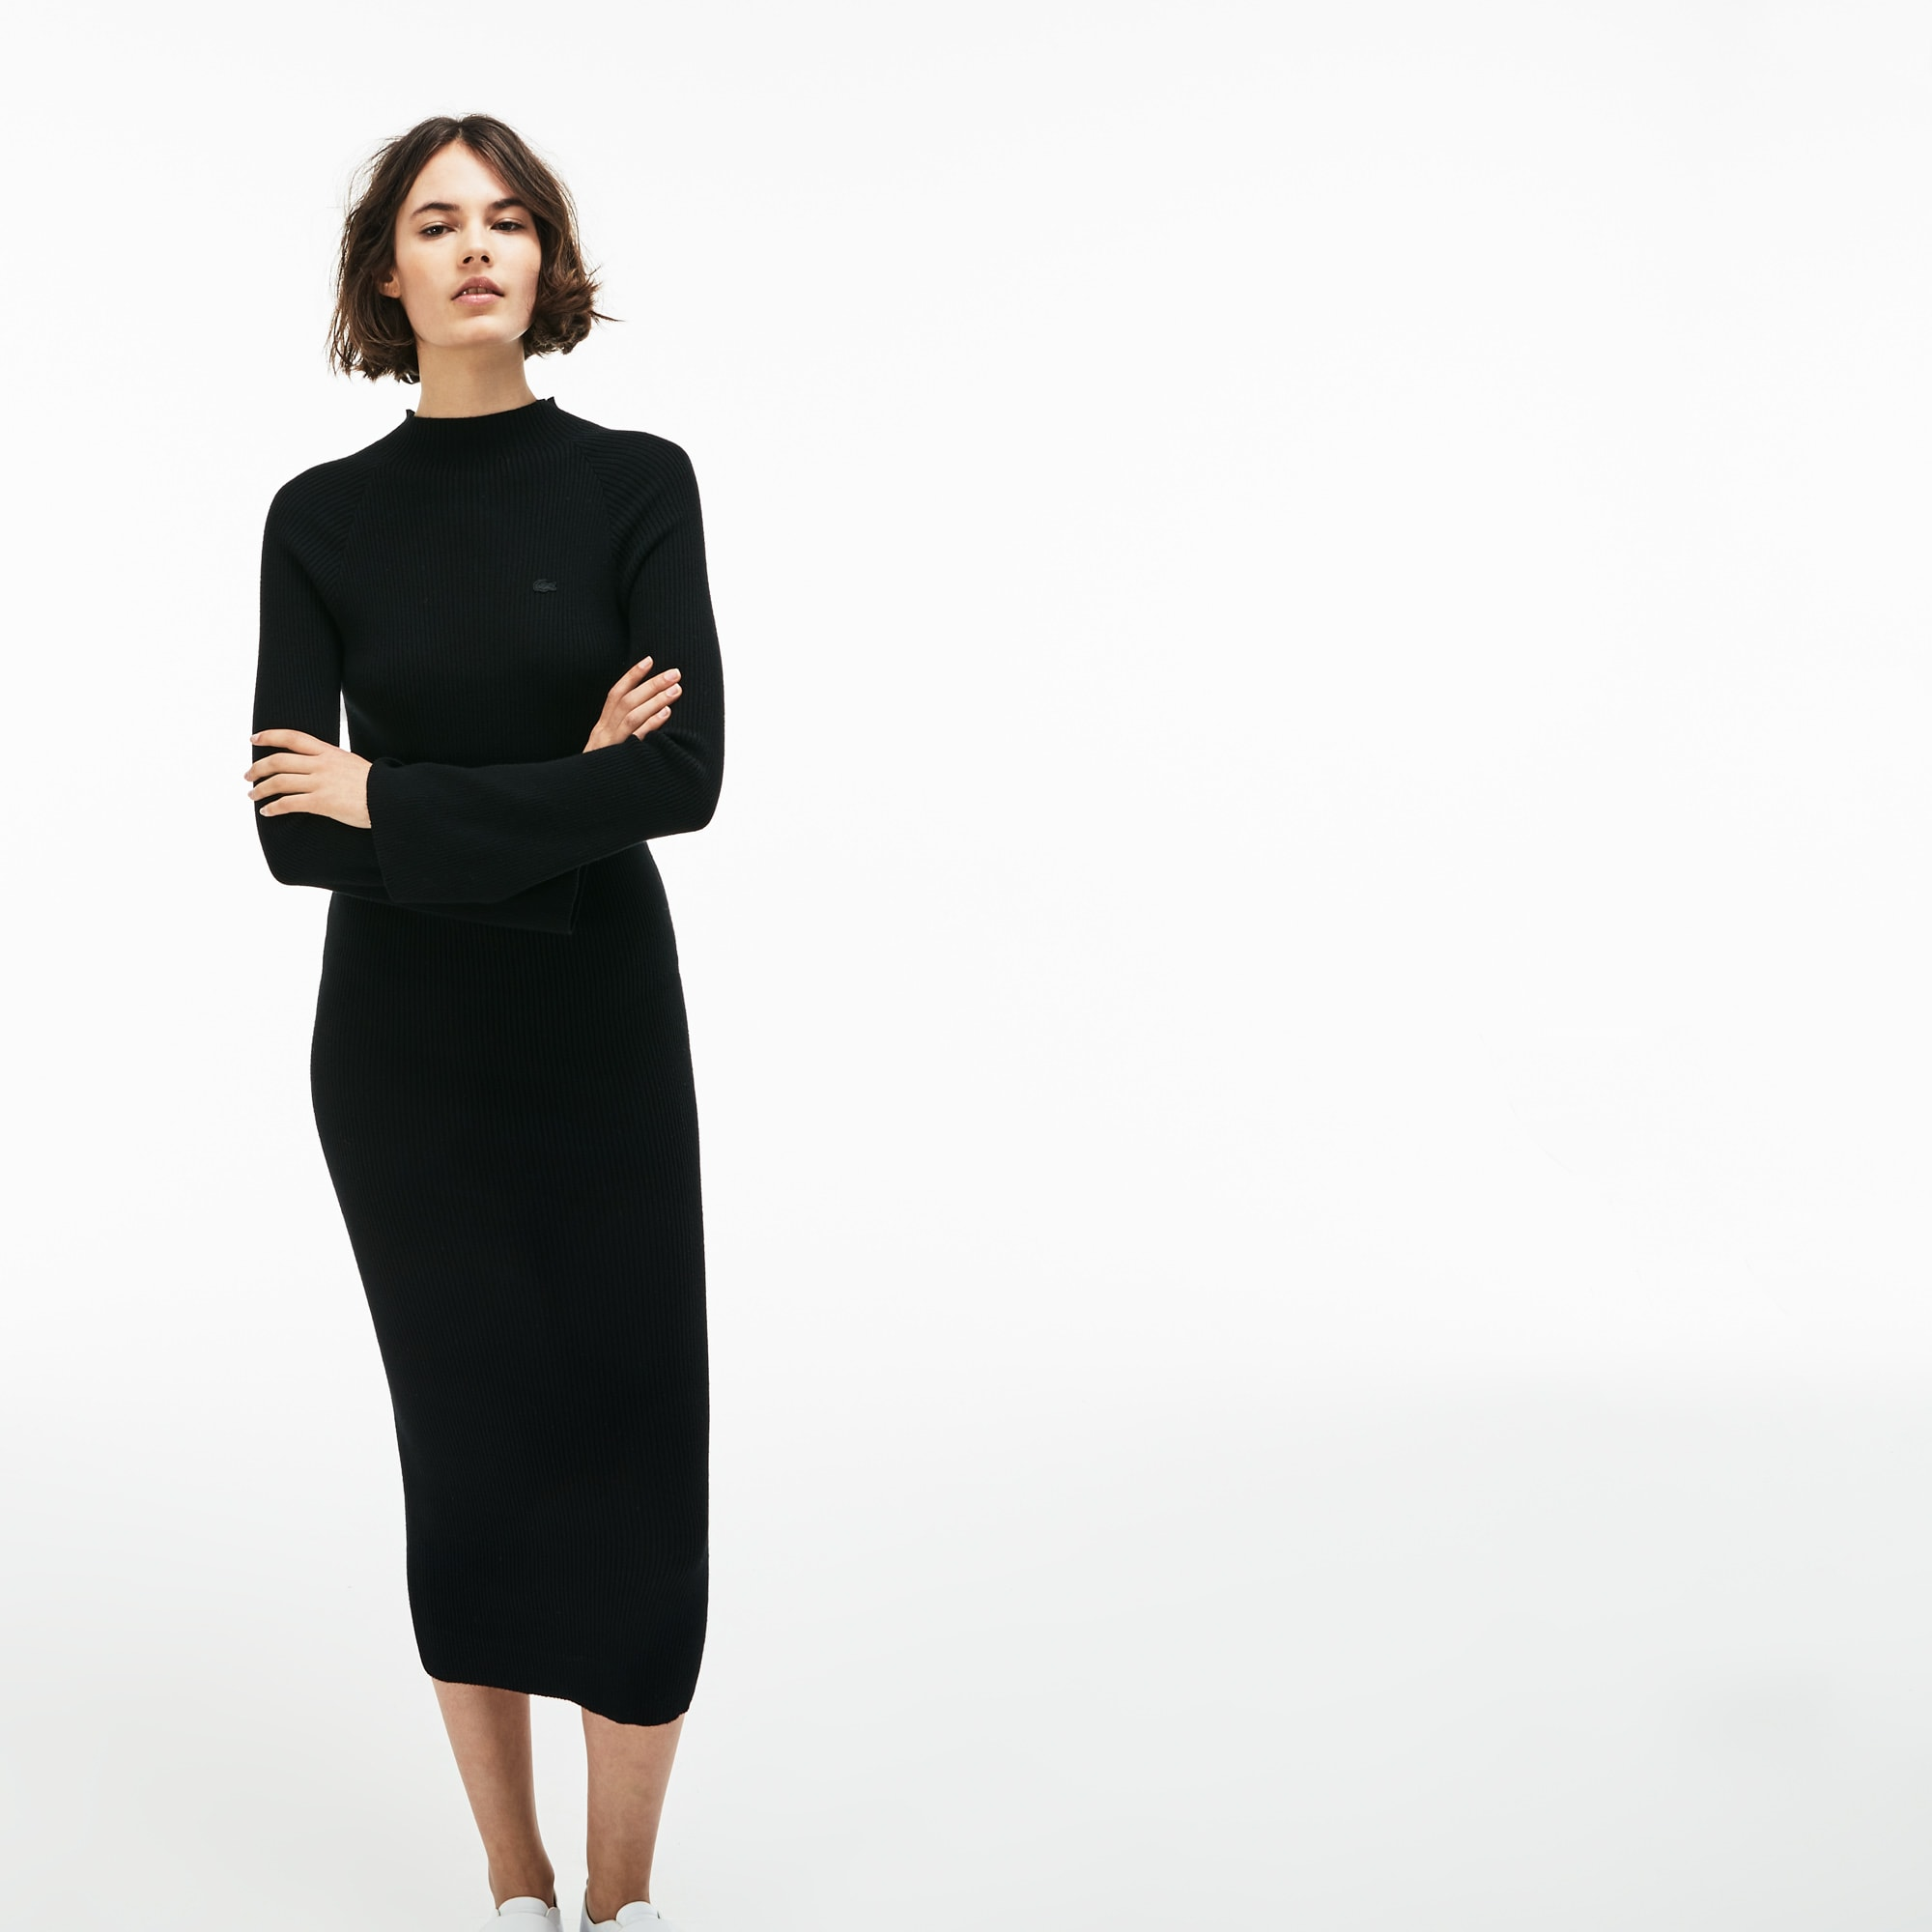 Women's Lacoste LIVE Close-Fitting Ribbed Cotton And Cashmere Dress